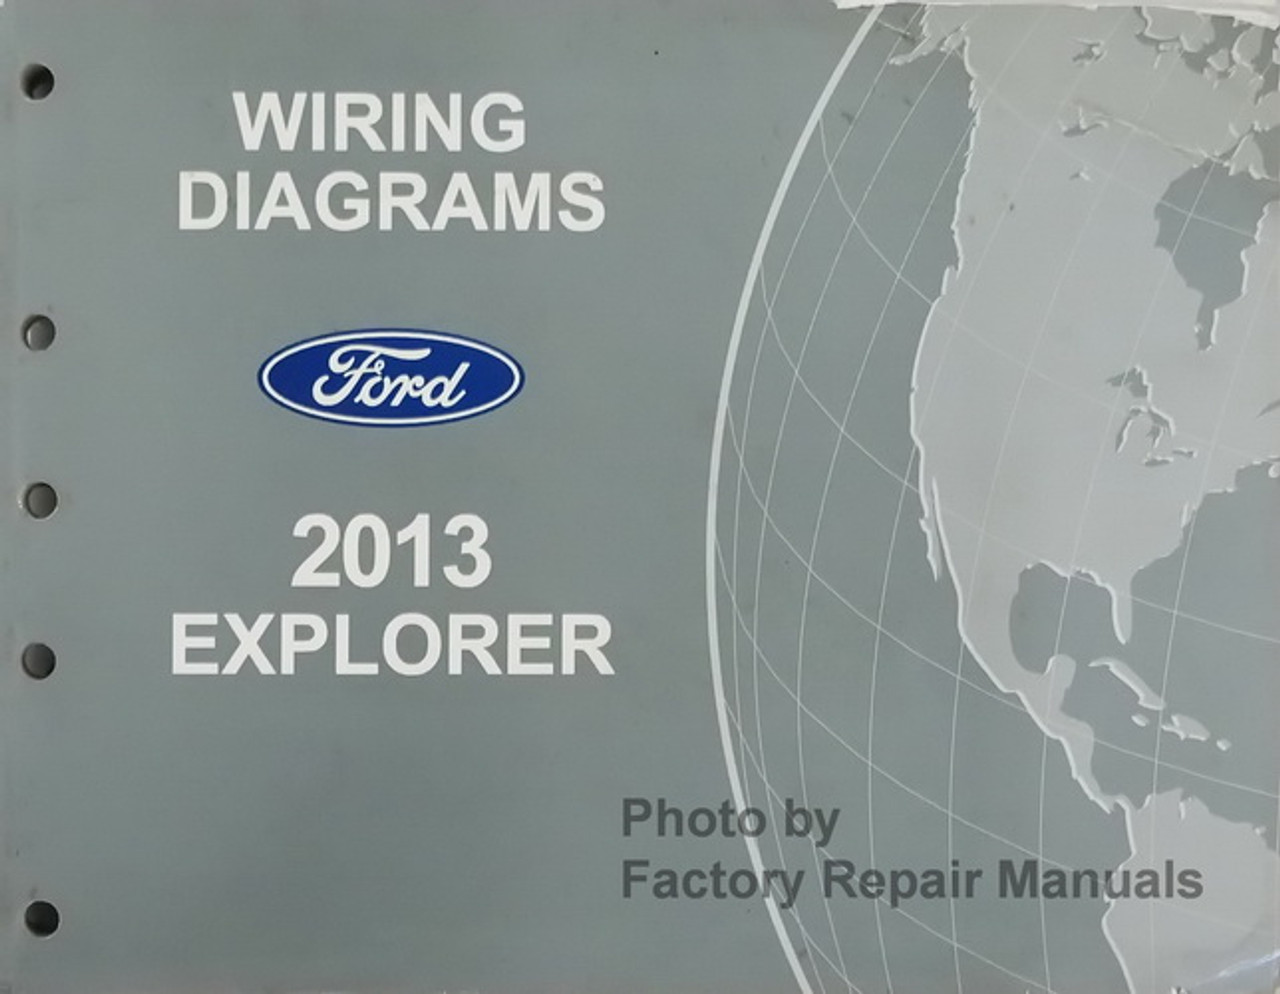 2013 Ford Explorer and Police Interceptor Utility Electrical Wiring Diagrams  Original - Factory Repair Manuals | 2013 Explorer Wiring Diagram |  | Factory Repair Manuals